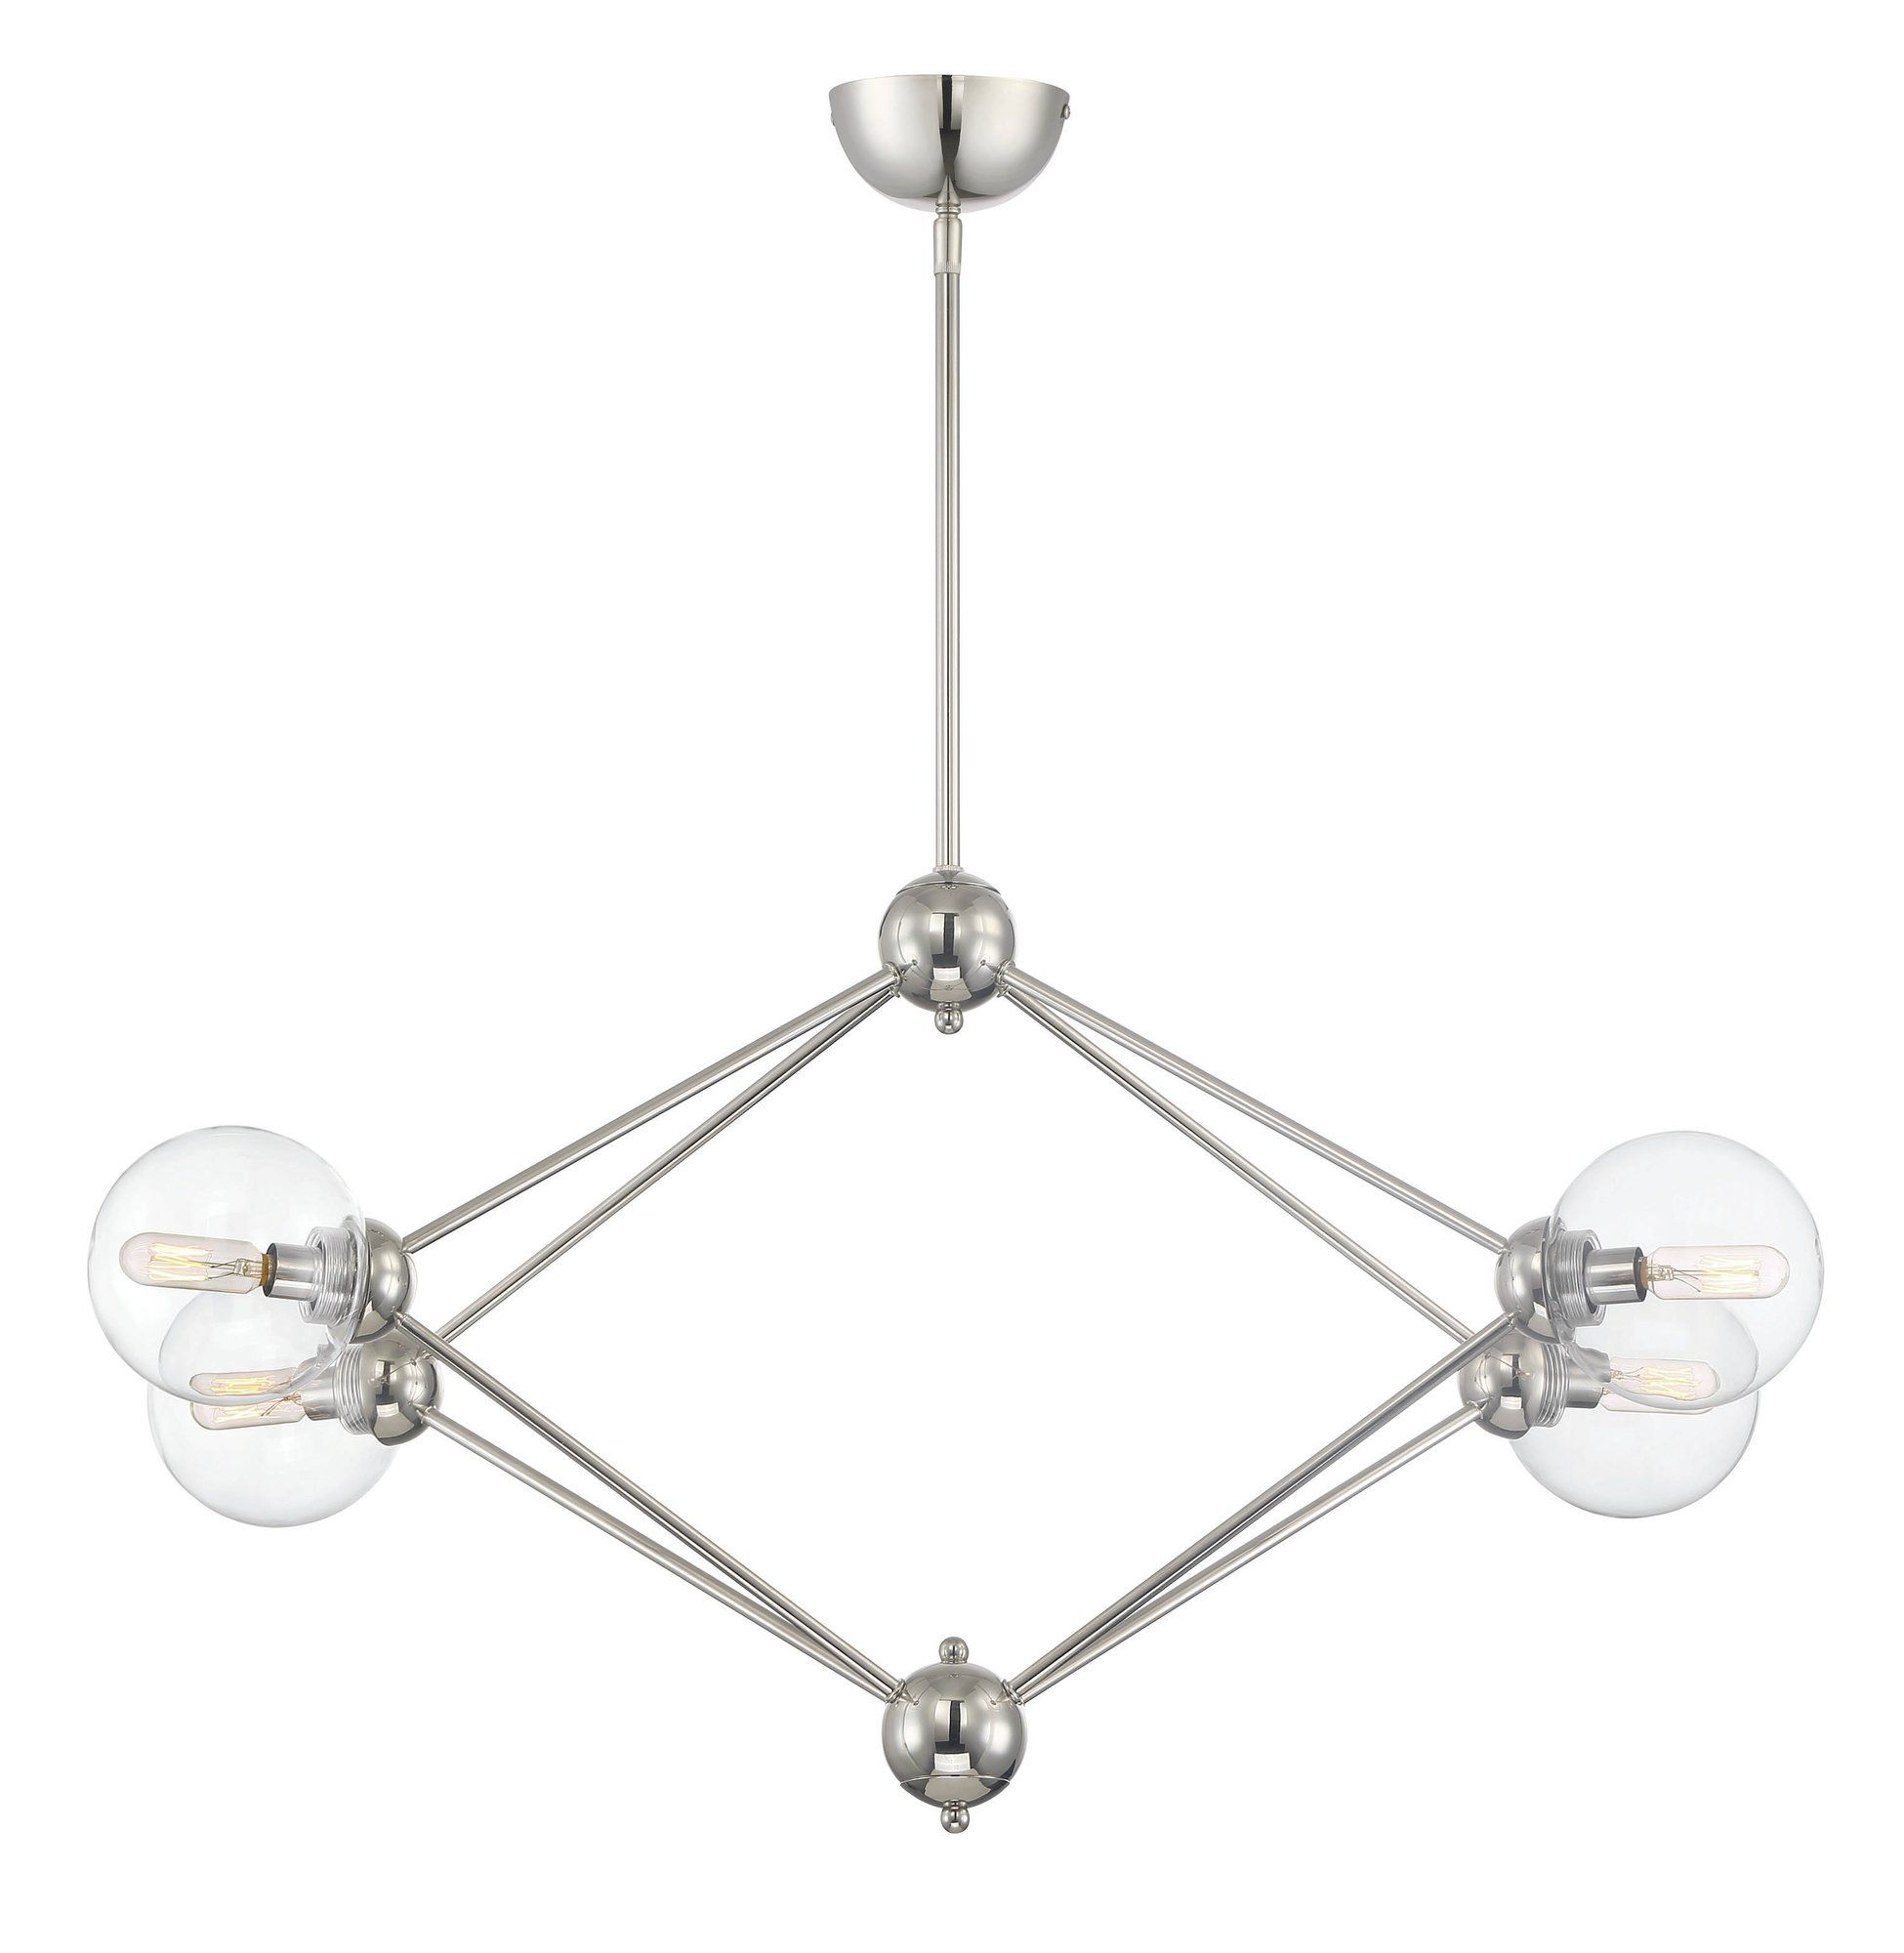 Valetta 4 Light Sputnik Chandelier Products